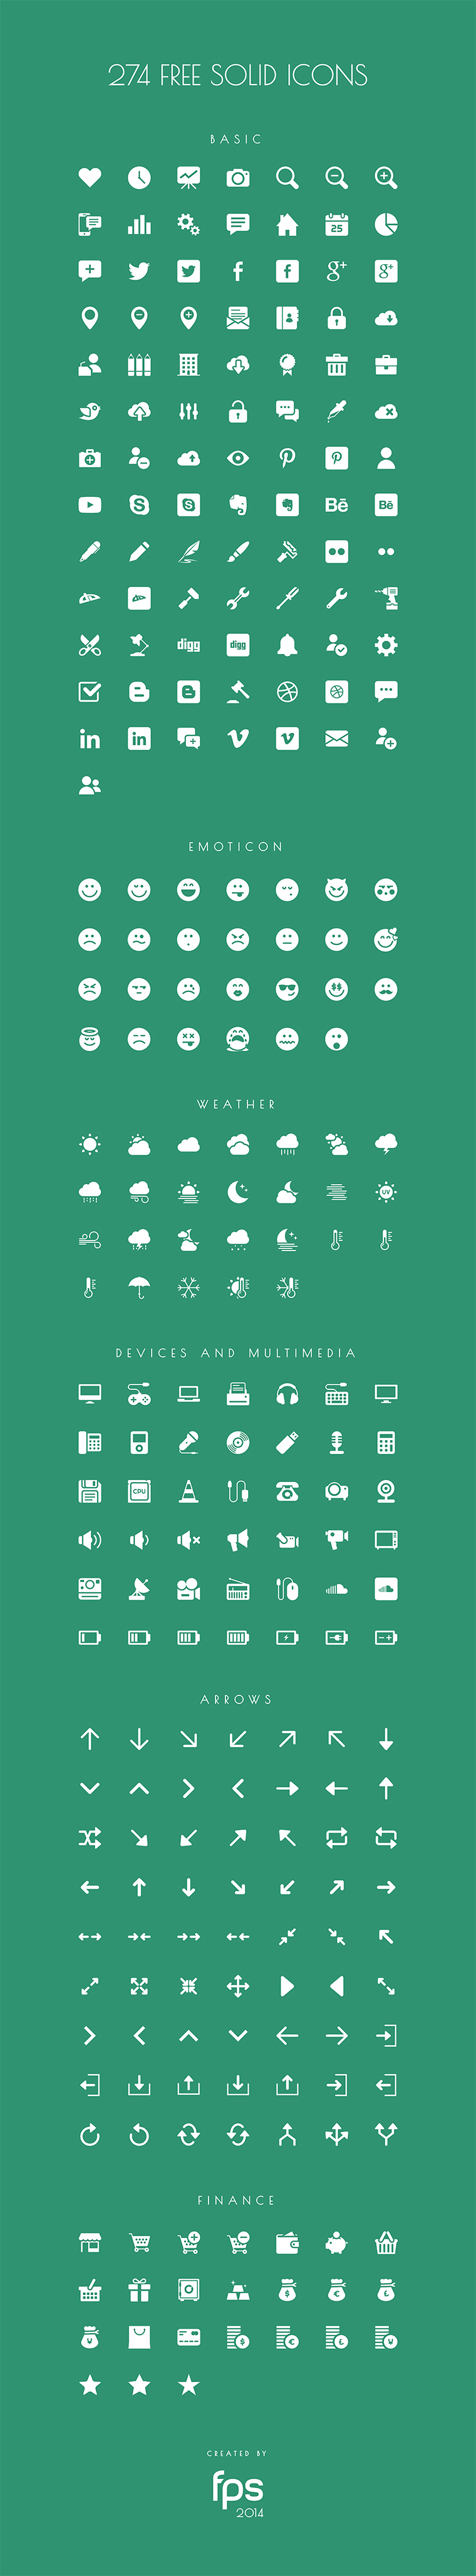 274 Vector Solid Icons by fps web agency